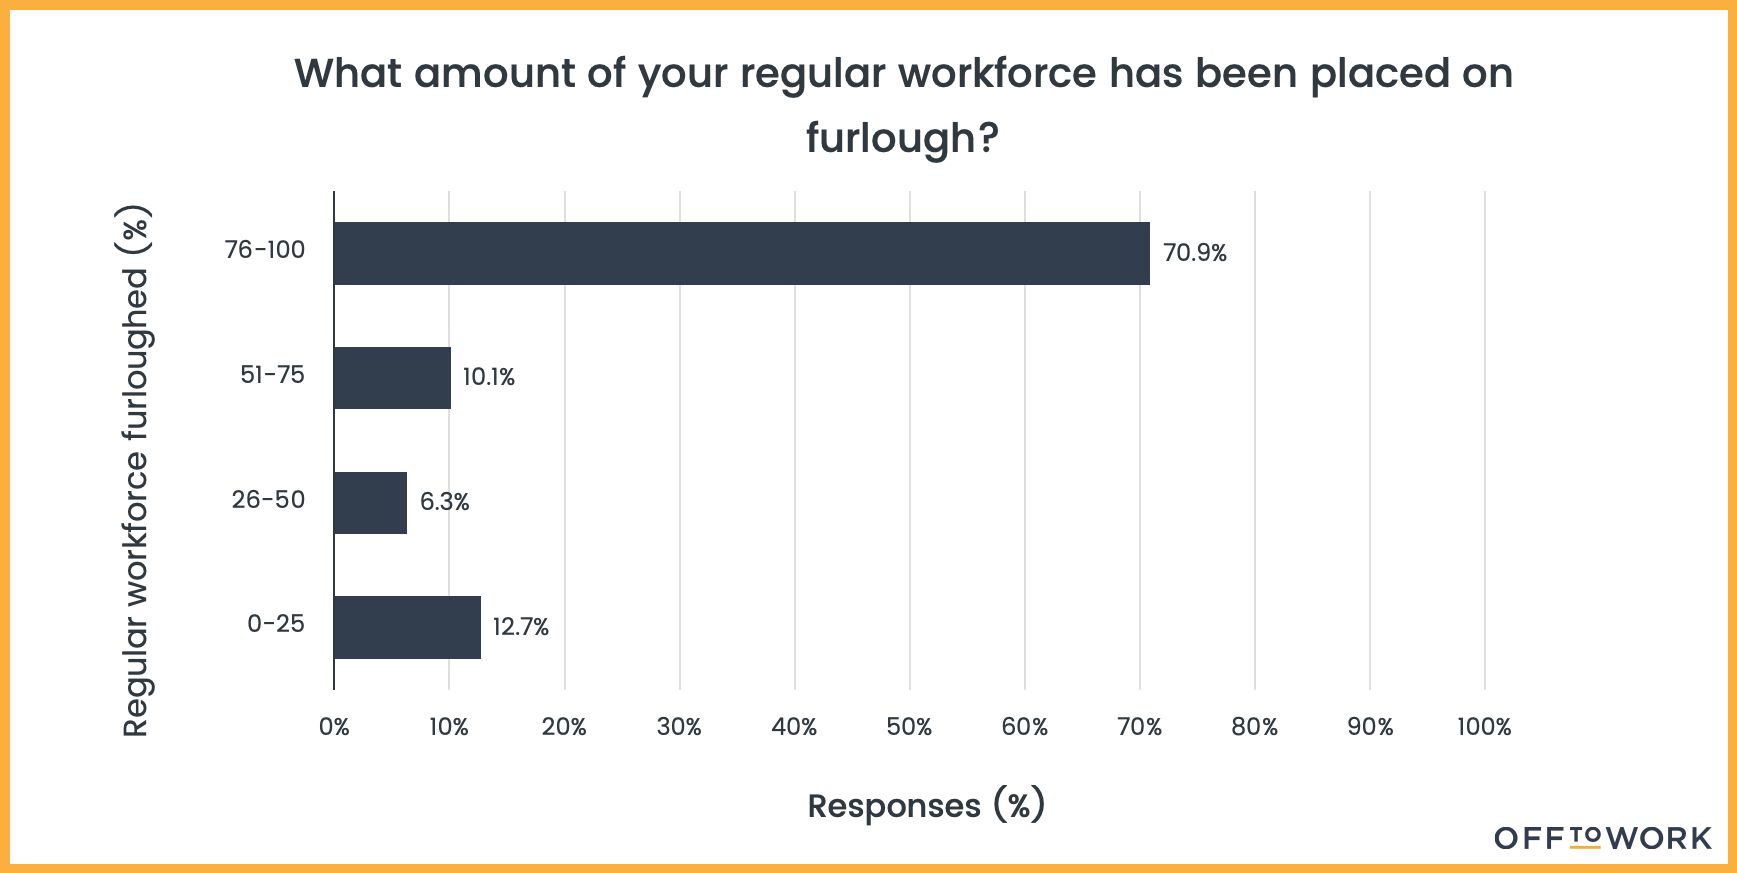 What amount of your workforce has been placed on furlough?